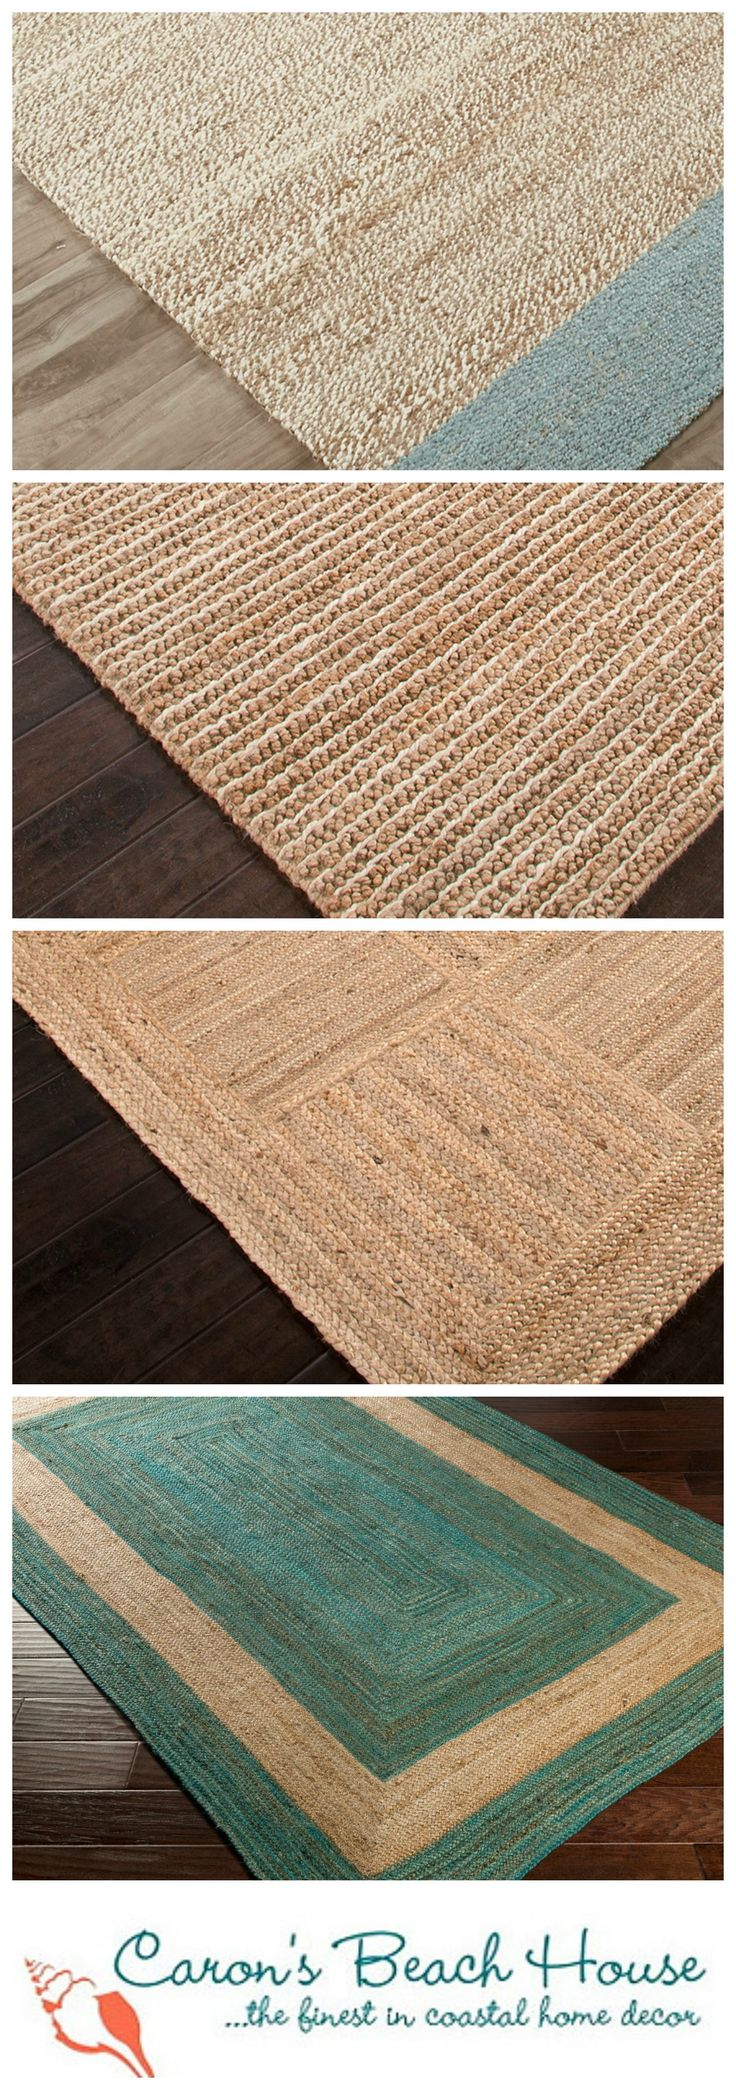 Bringing in bits of natural beauty is an essential ingredient when decorating for beach homes!  Get the look with gorgeous sea grass area rugs